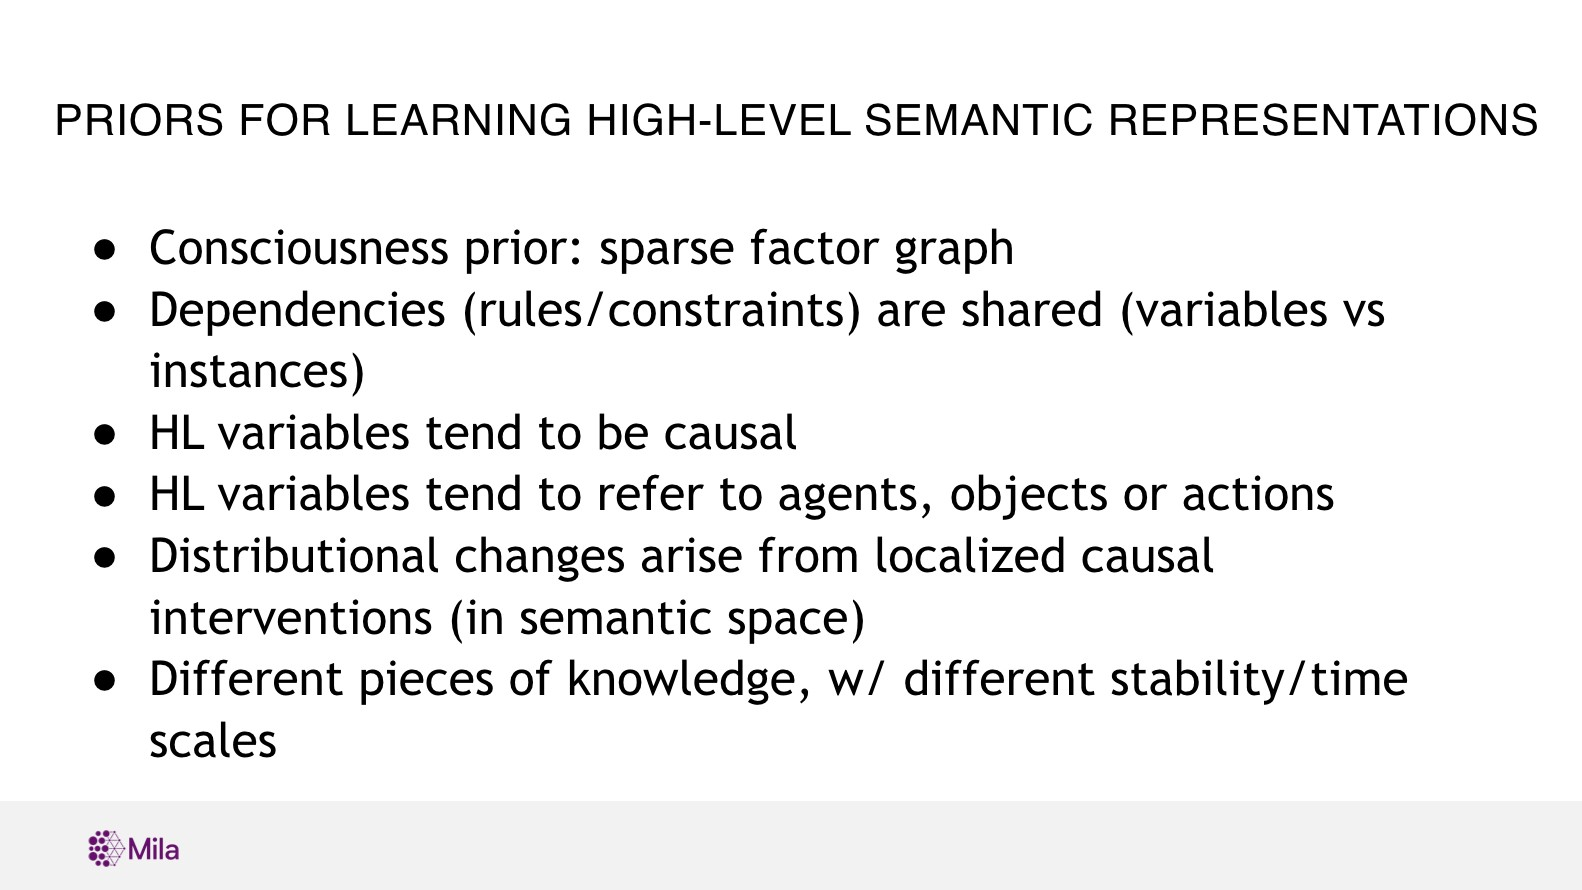 PRIORS for learning high-level semantic representations